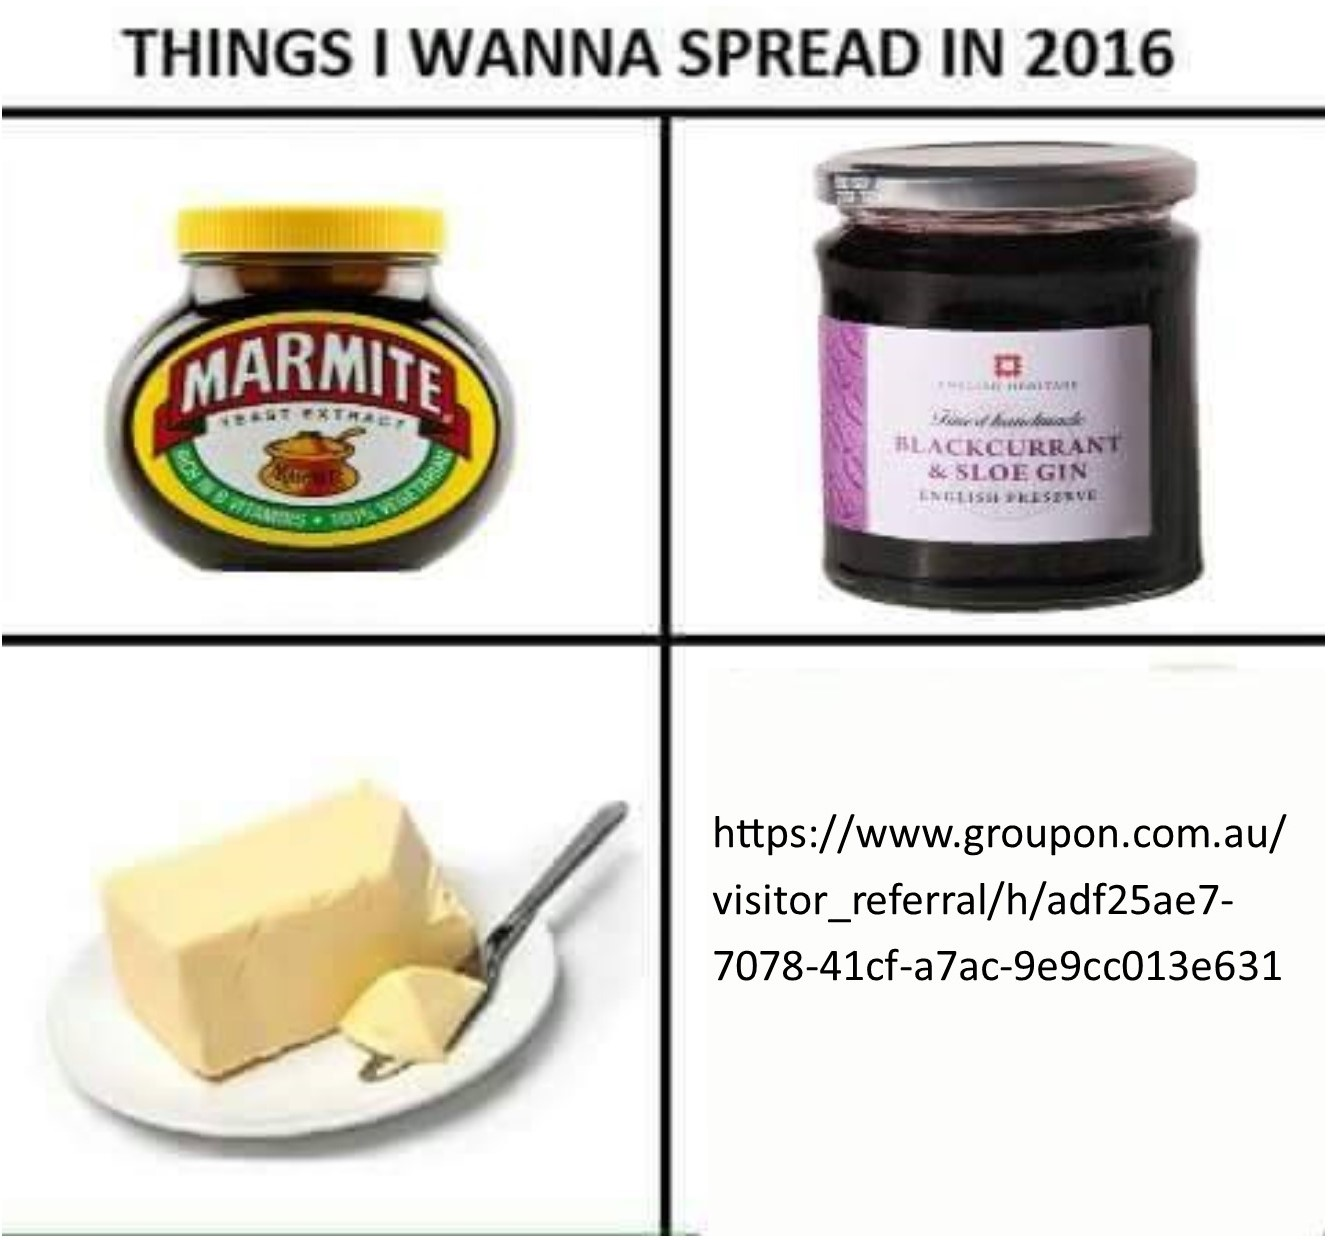 THINGS I WANNA SPREAD IN 2016